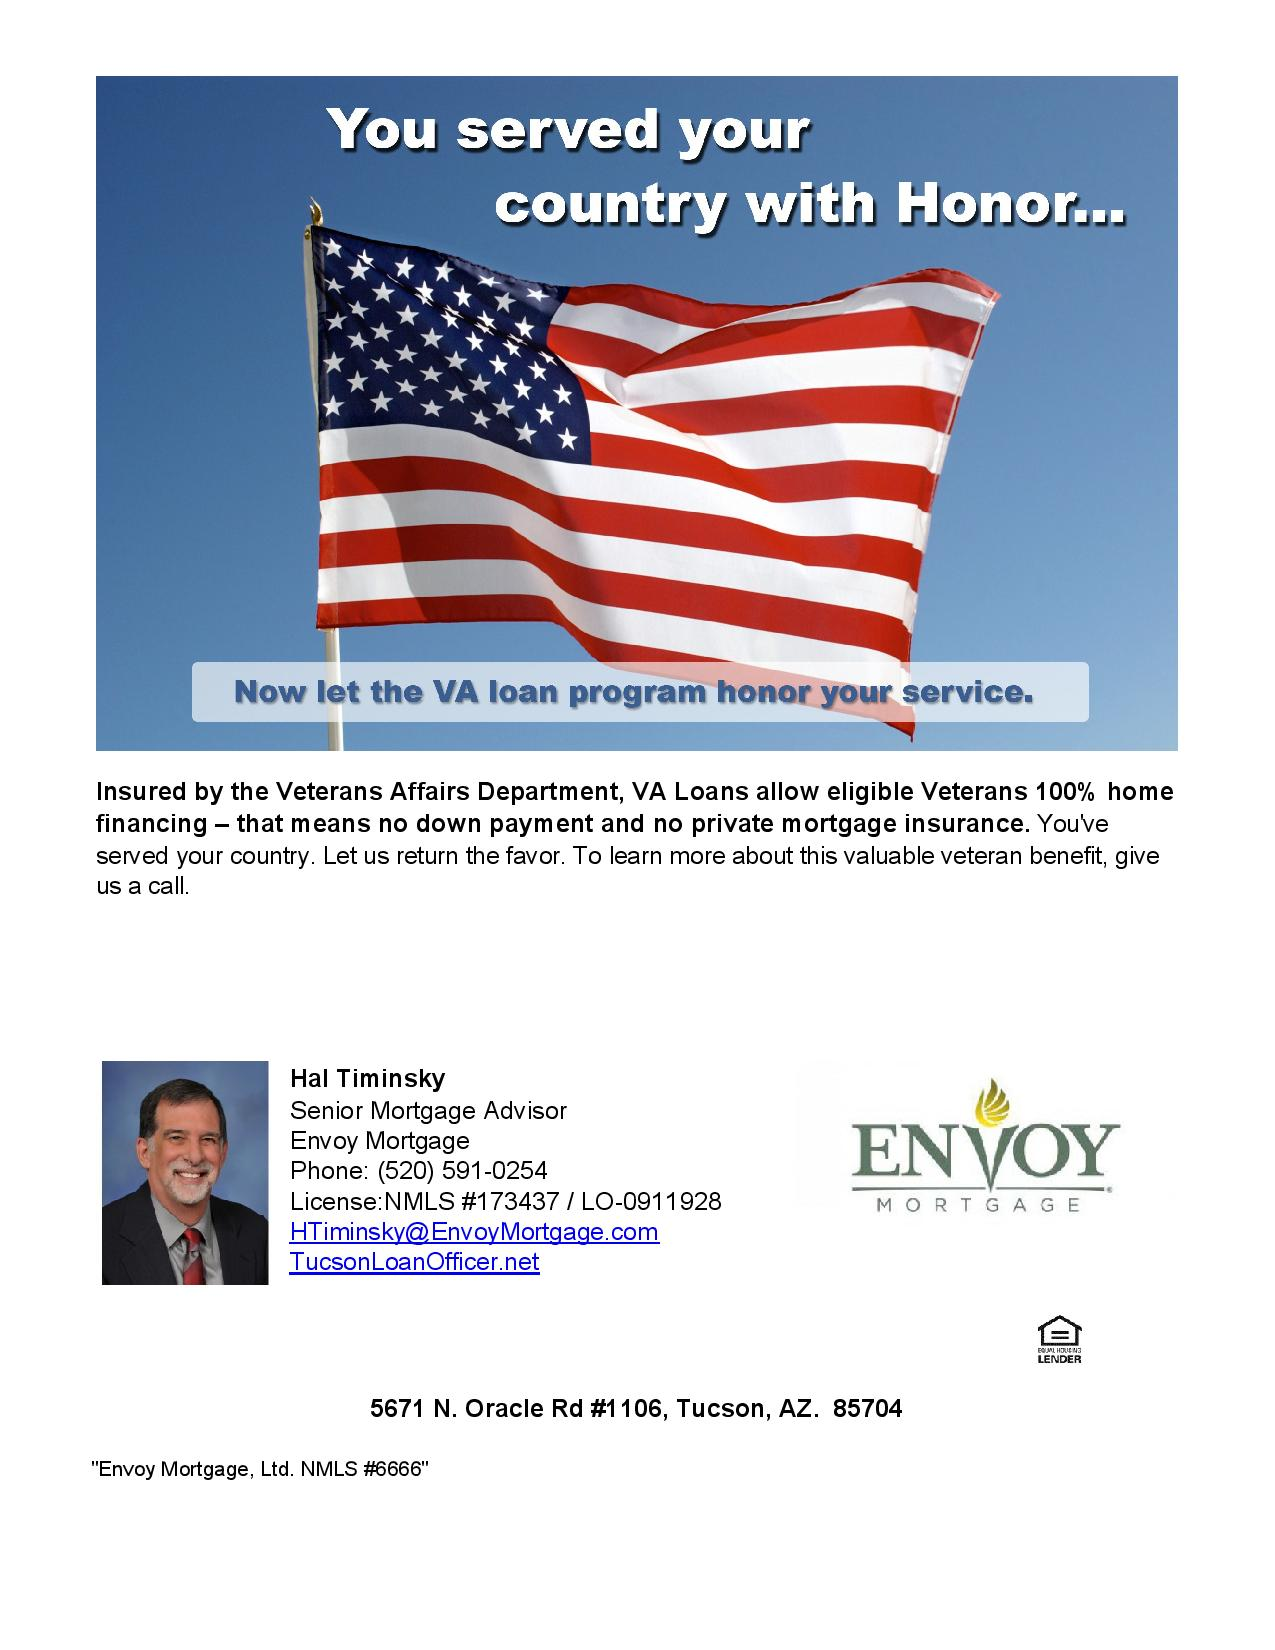 You served your country with honor-page-001 (1)